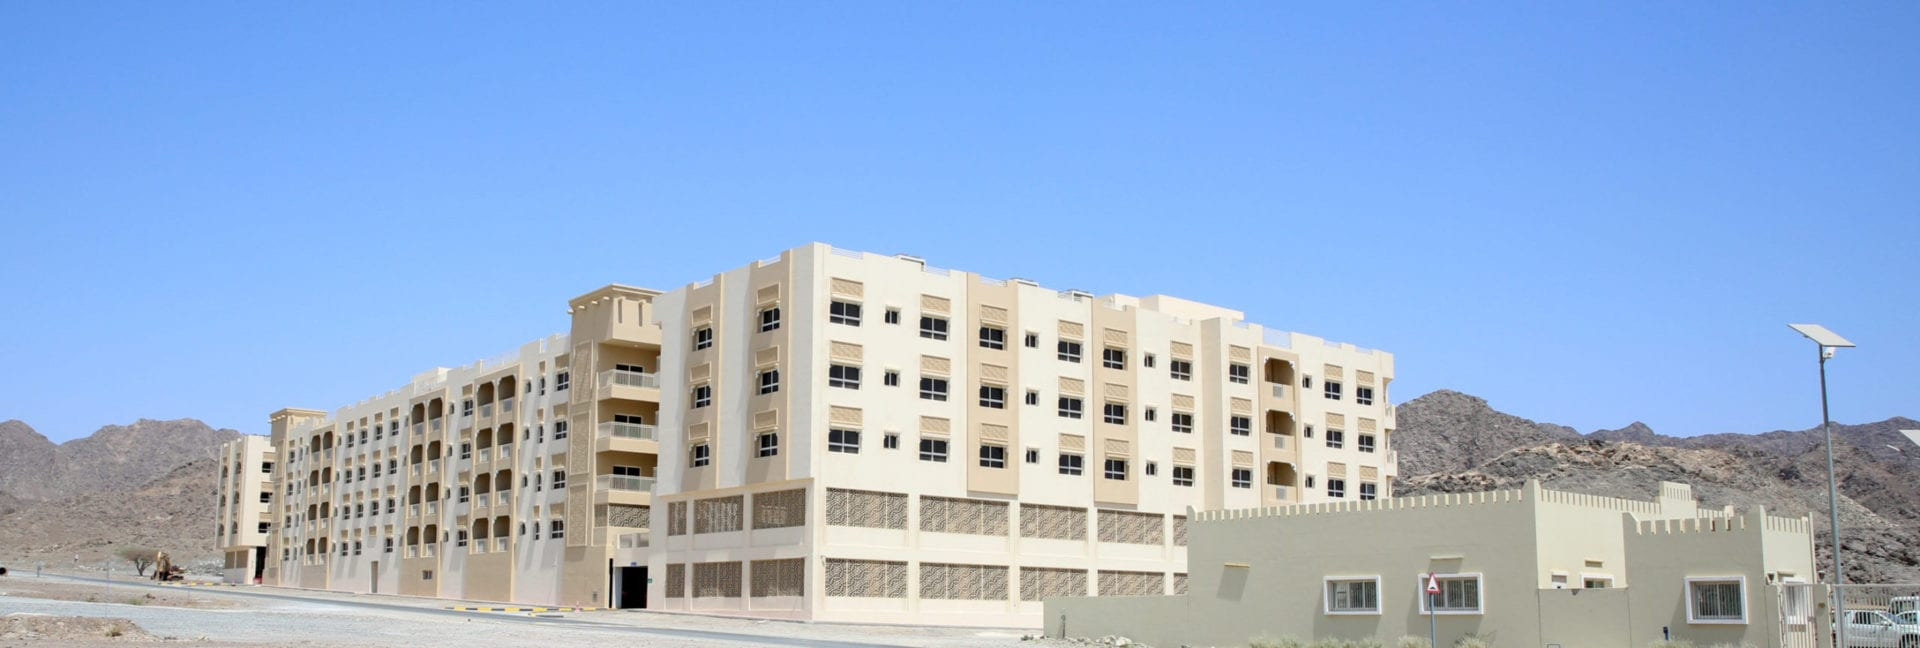 Housing Complex For Municipality Staff At Hatta 3 scaled